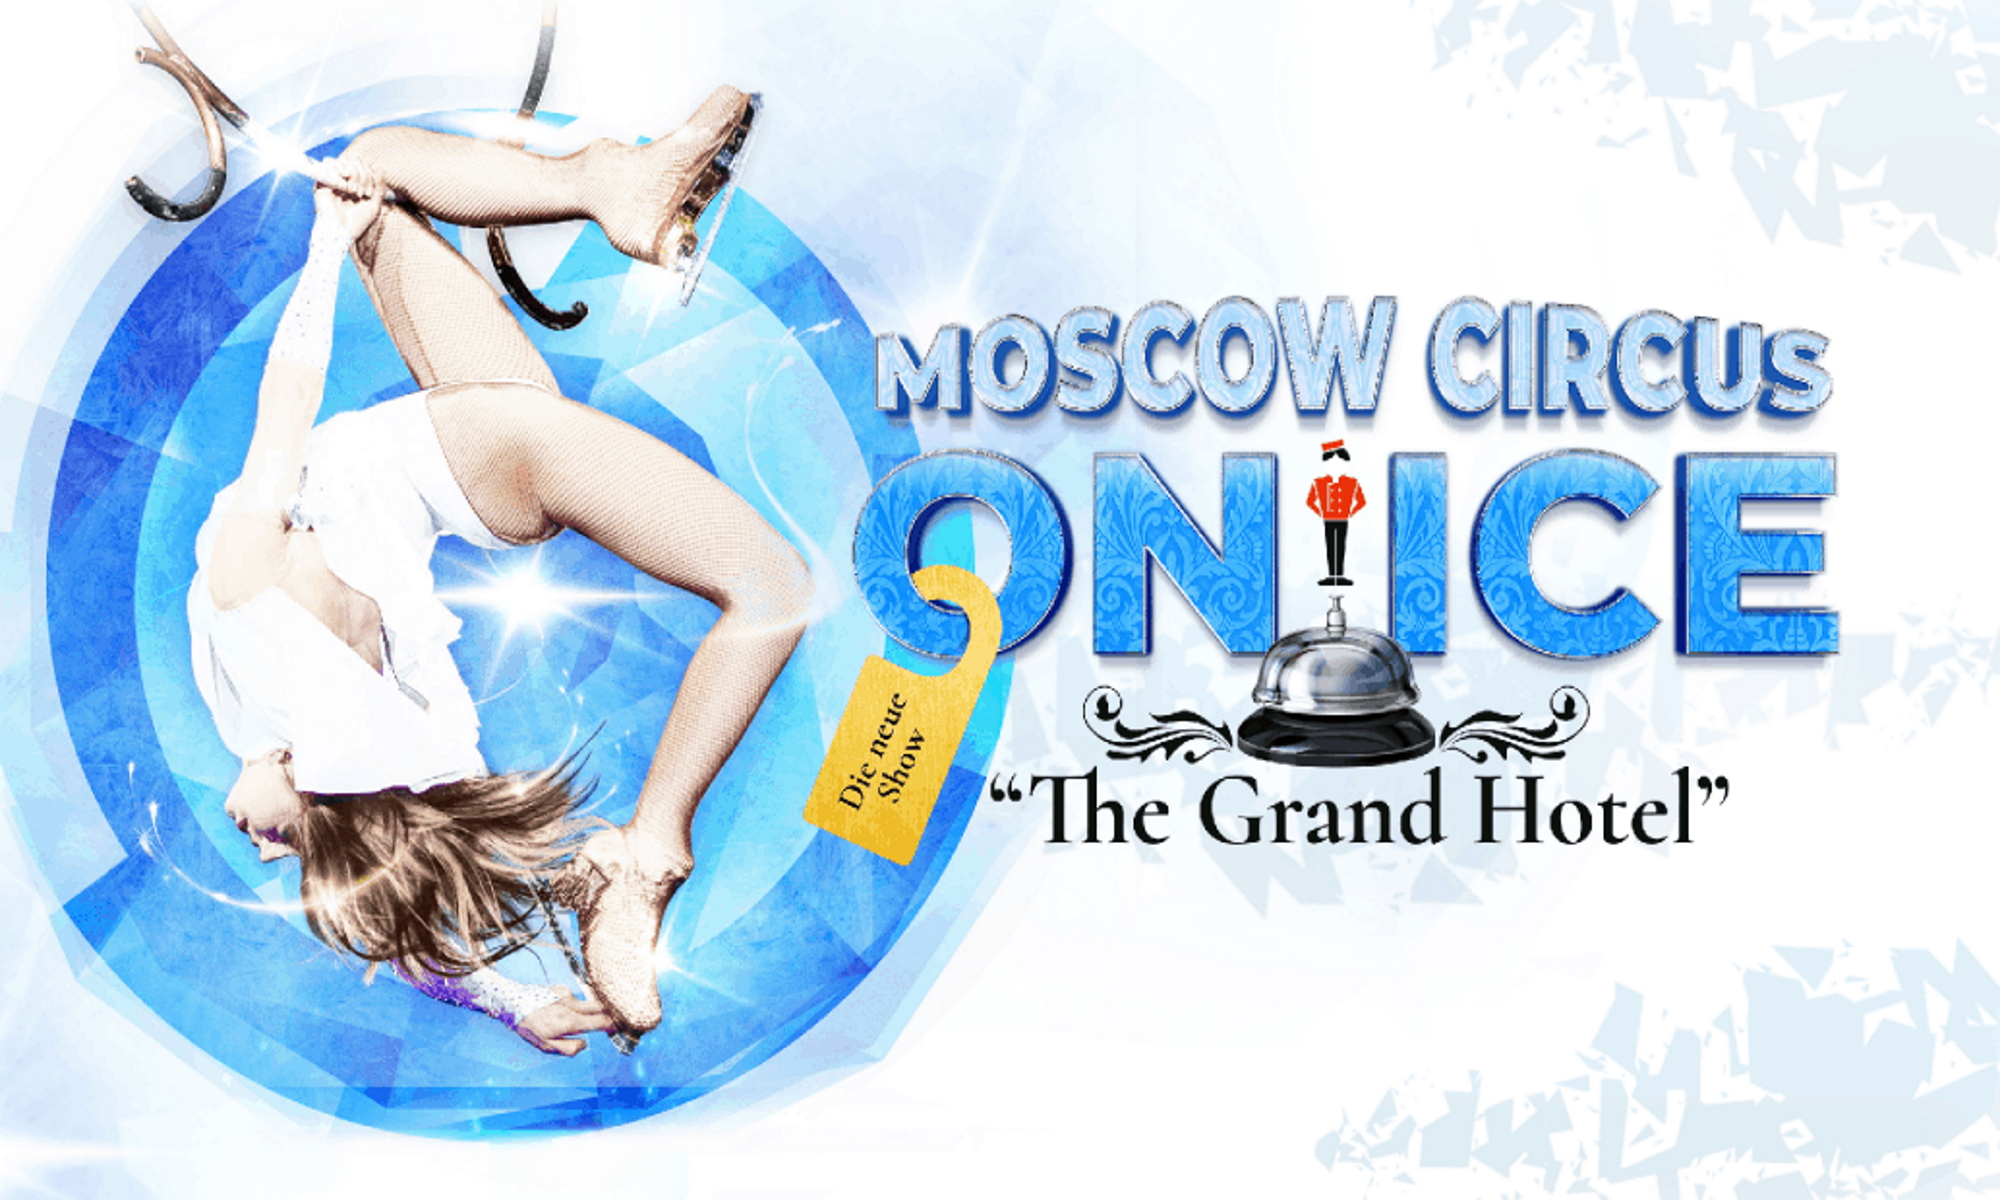 Circus on ice Grand Hotel poster Girl in skates flies in aerial hoop